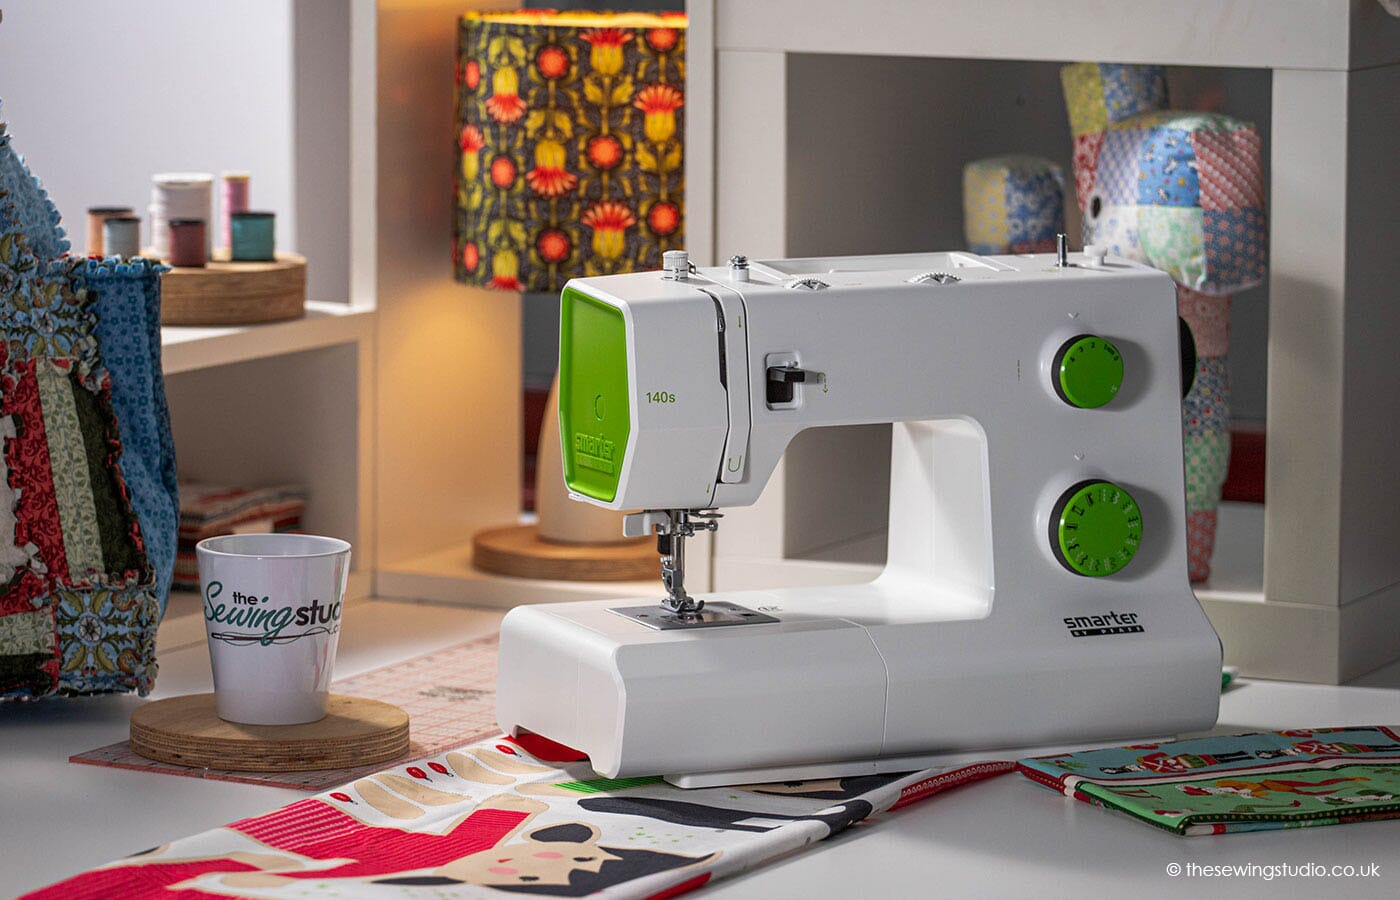 Pfaff Smarter 140s Sewing Machine in a Sewing Room